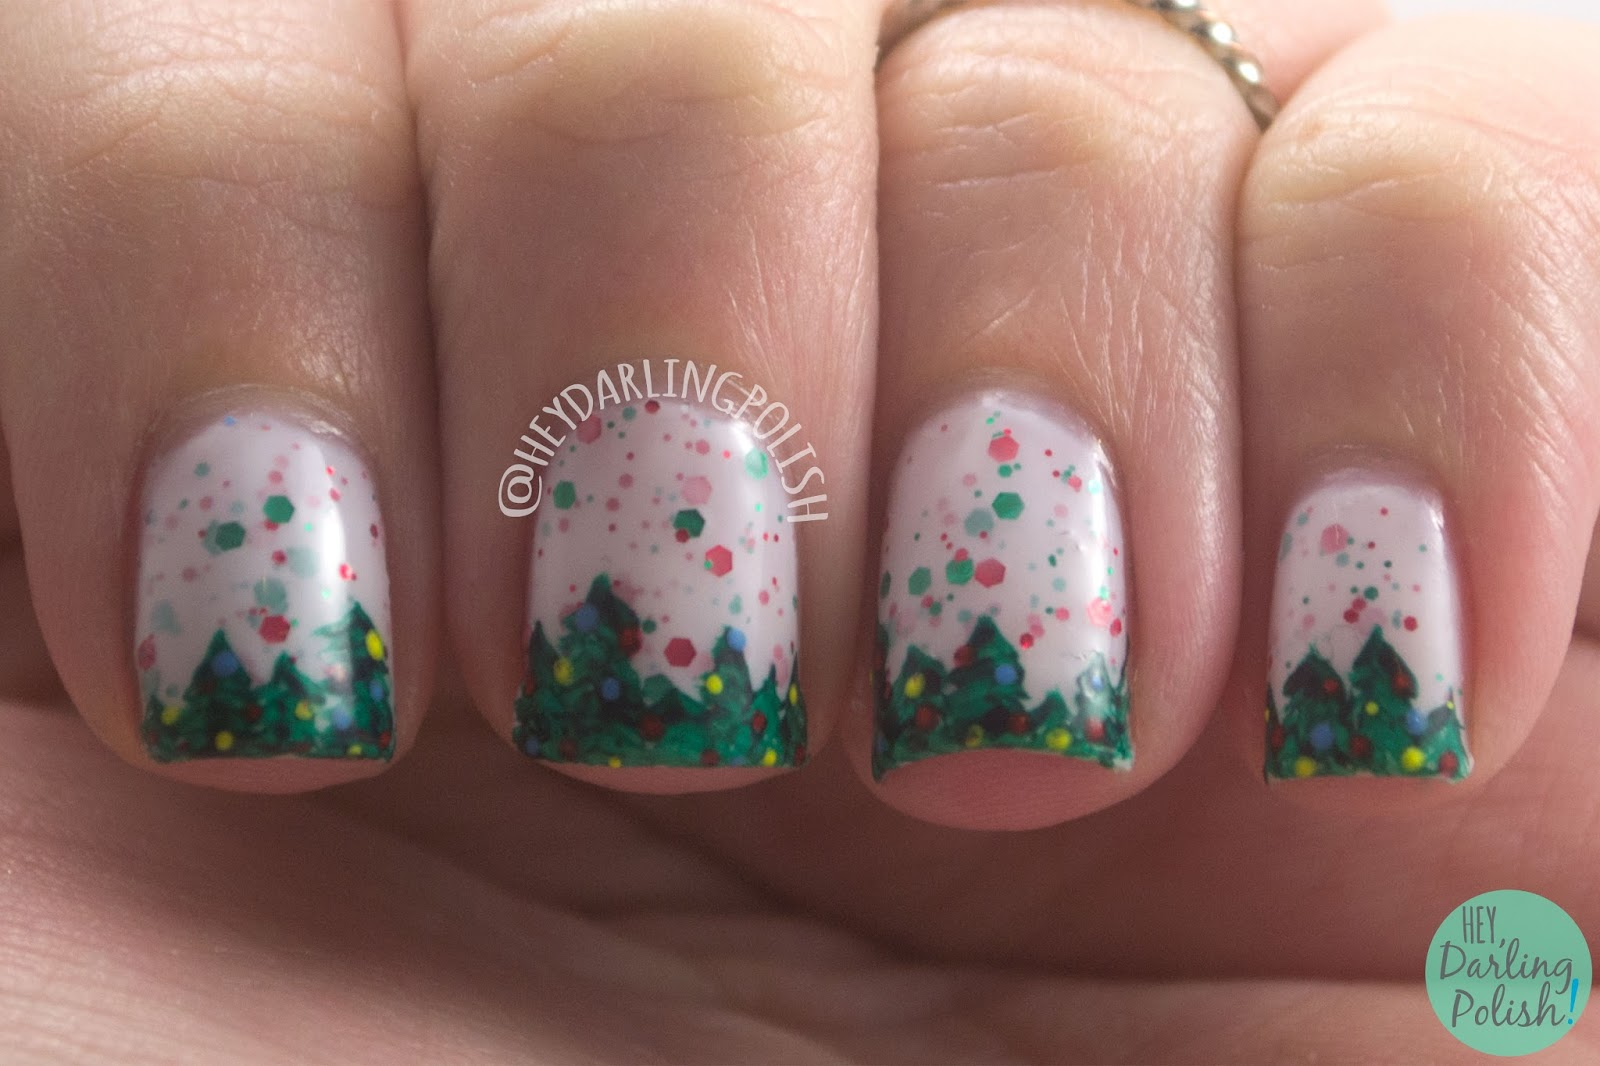 nail art, holly back girl, christmas, christmas trees, freehand, nails, nail polish, indie, indie polish, indie nail polish, kbshimmer, hey darling polish, glitter